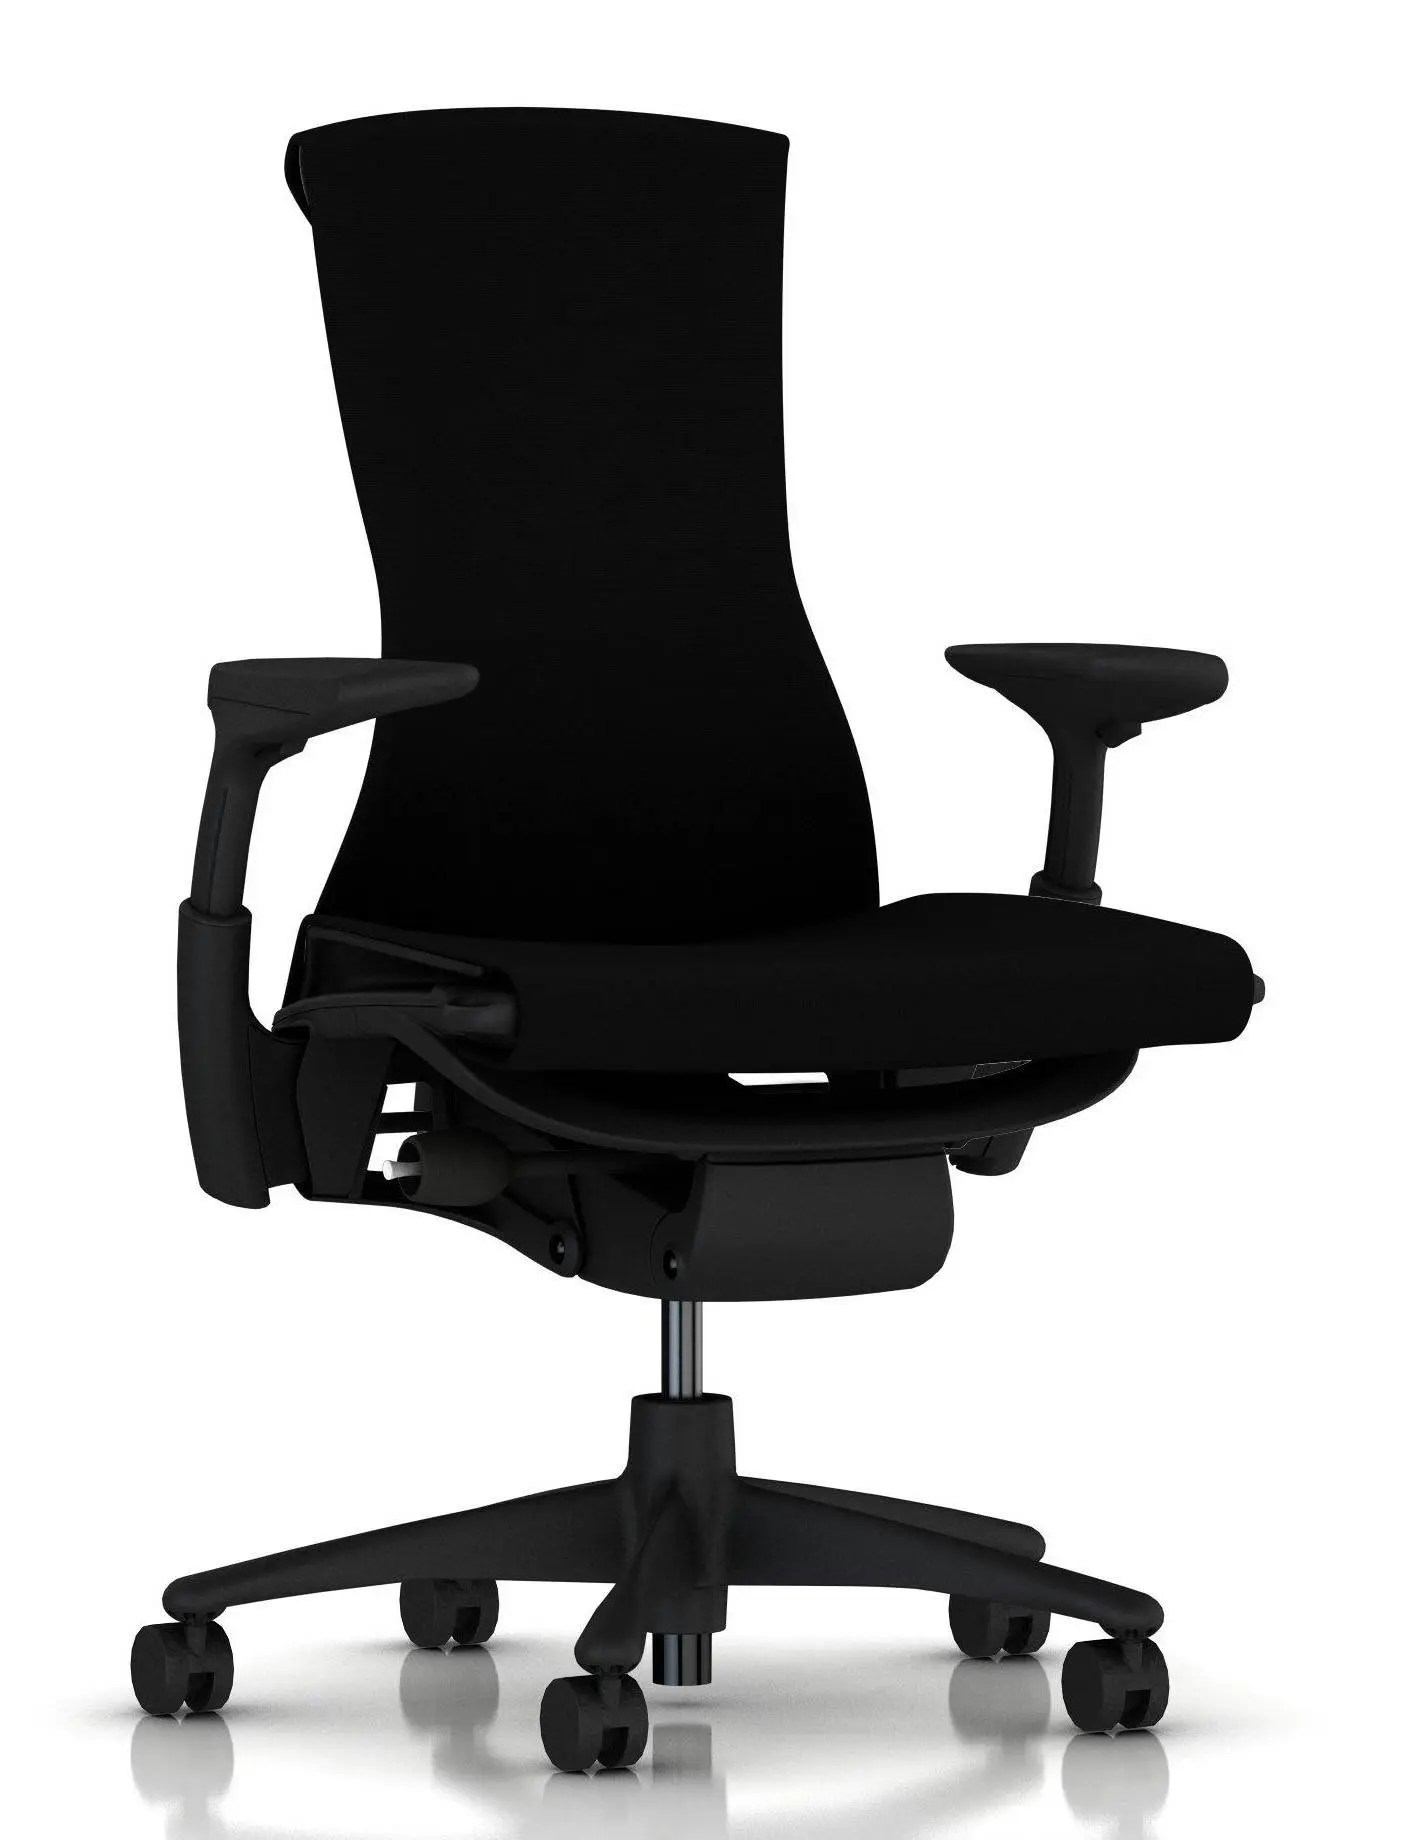 embody chair by herman miller revolving dimensions standard gr shop canada